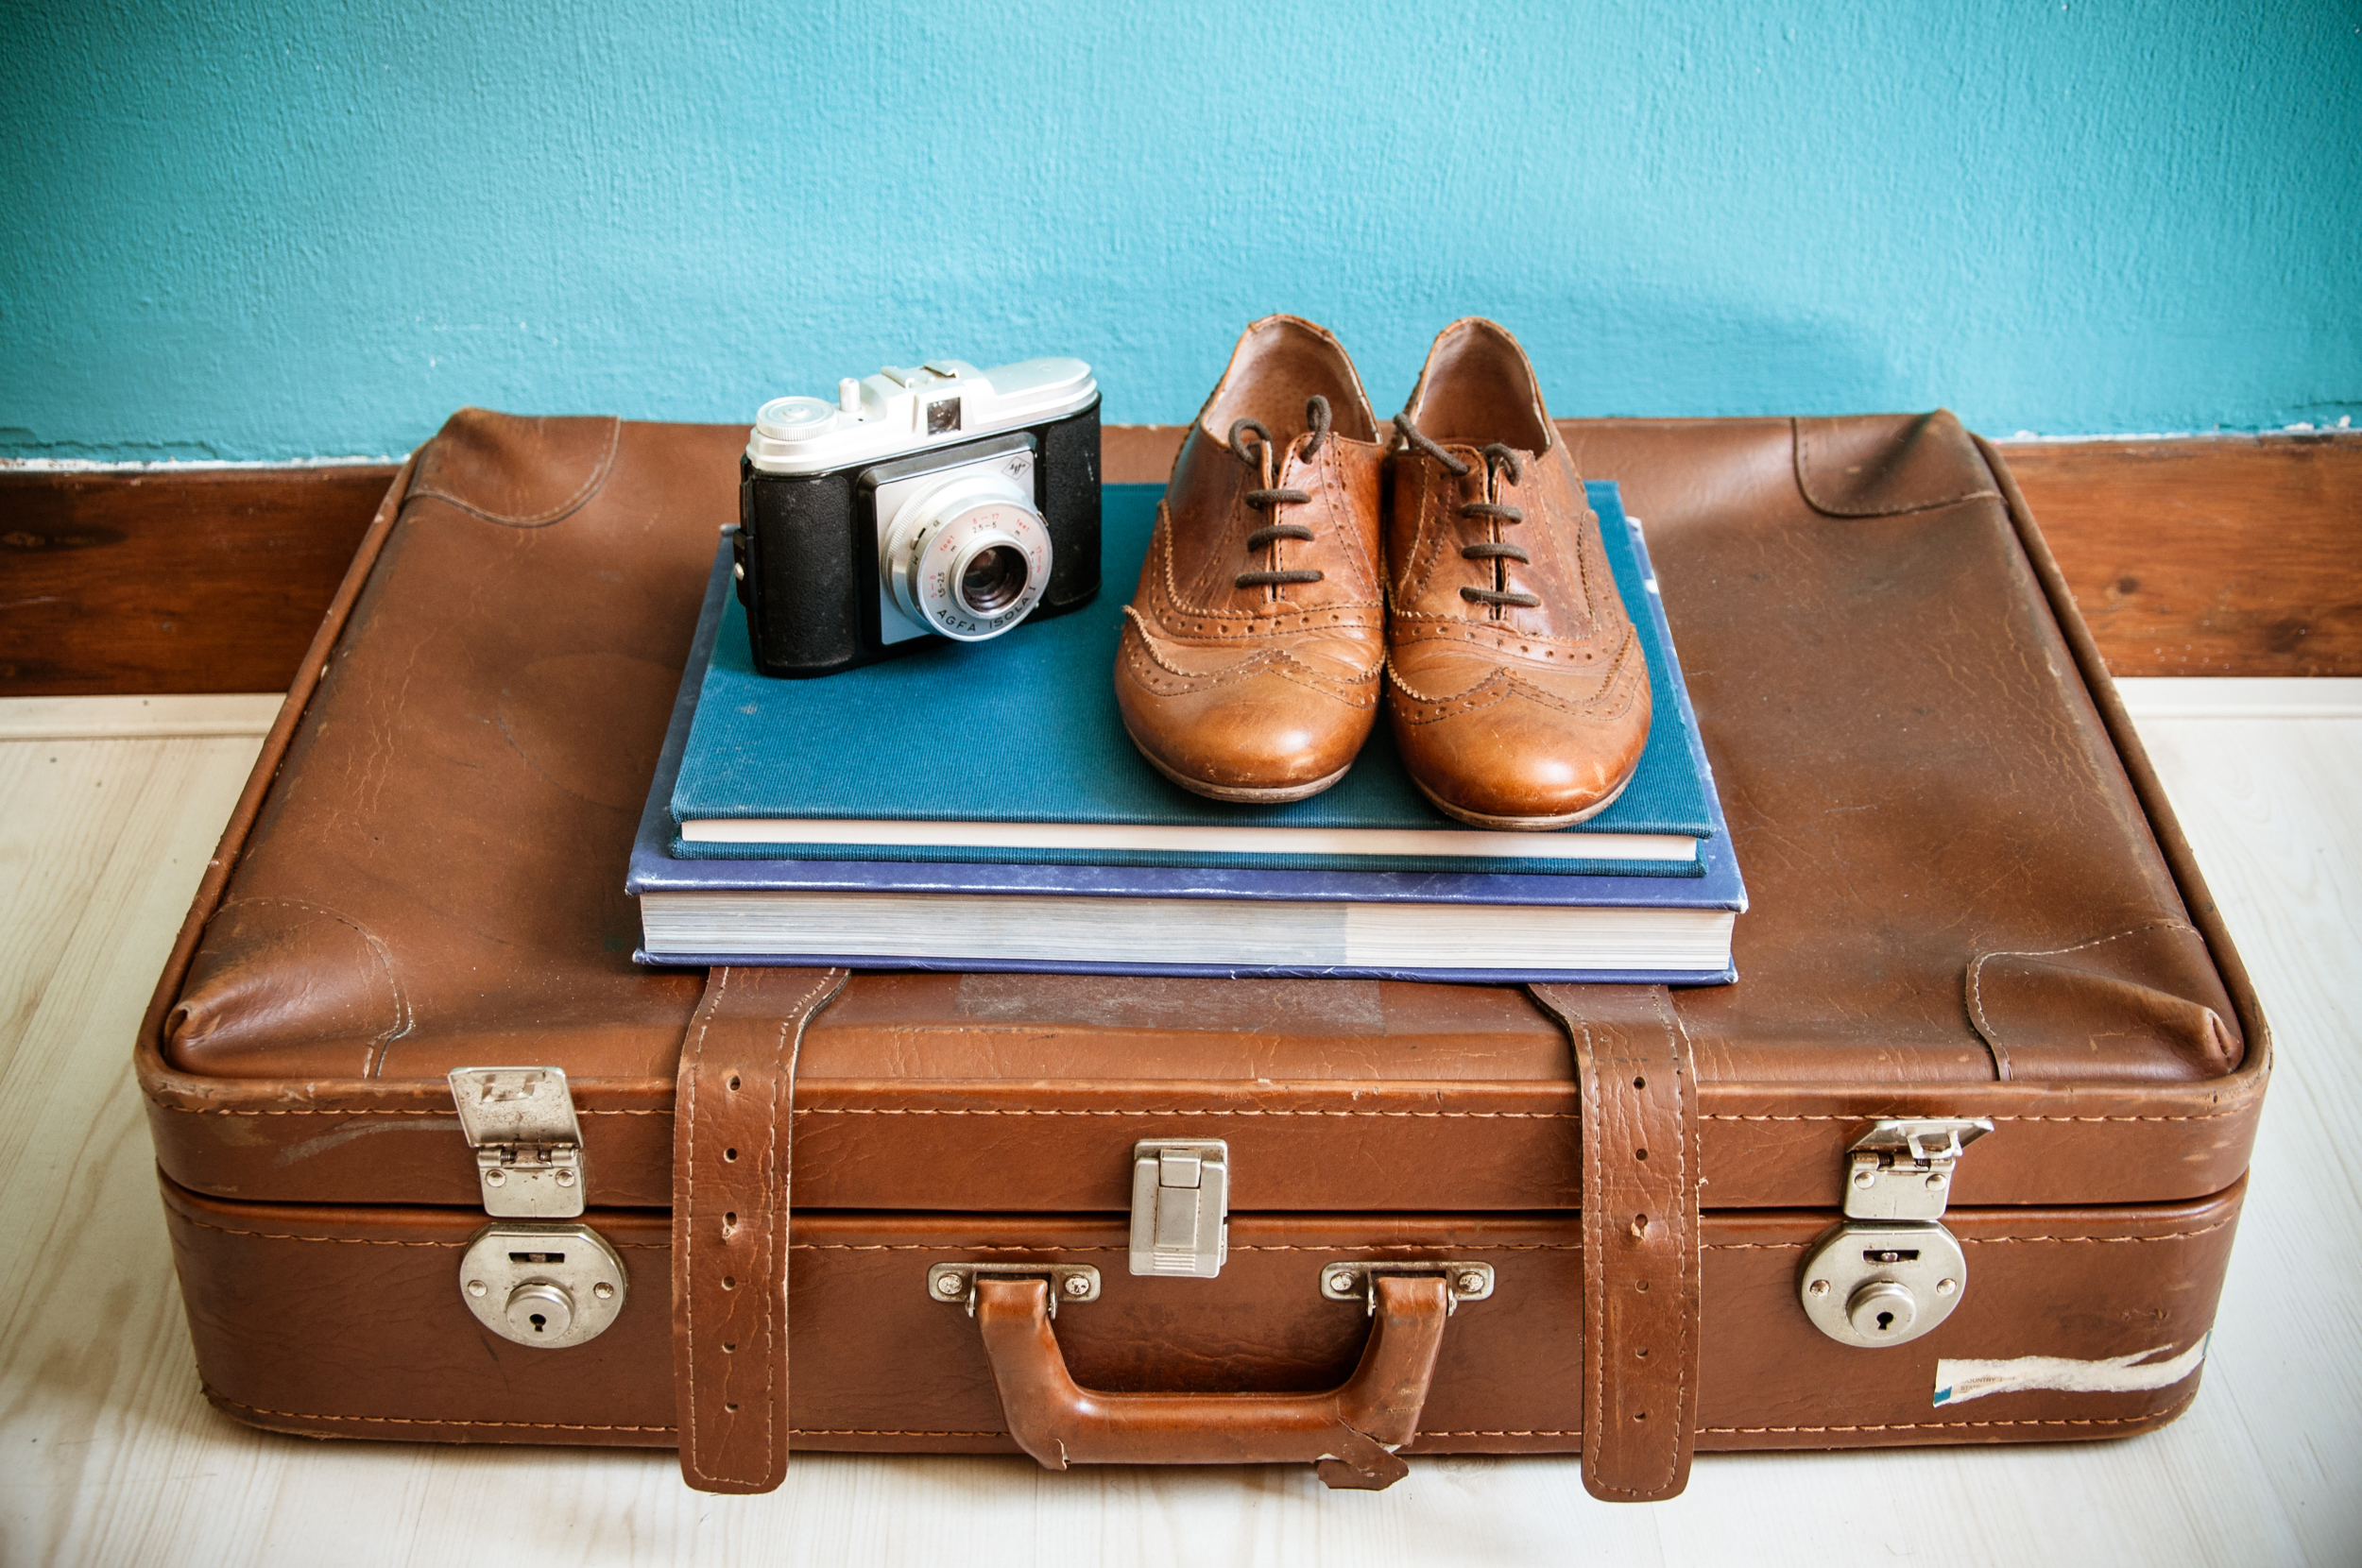 Vintage still life with suitcase photo